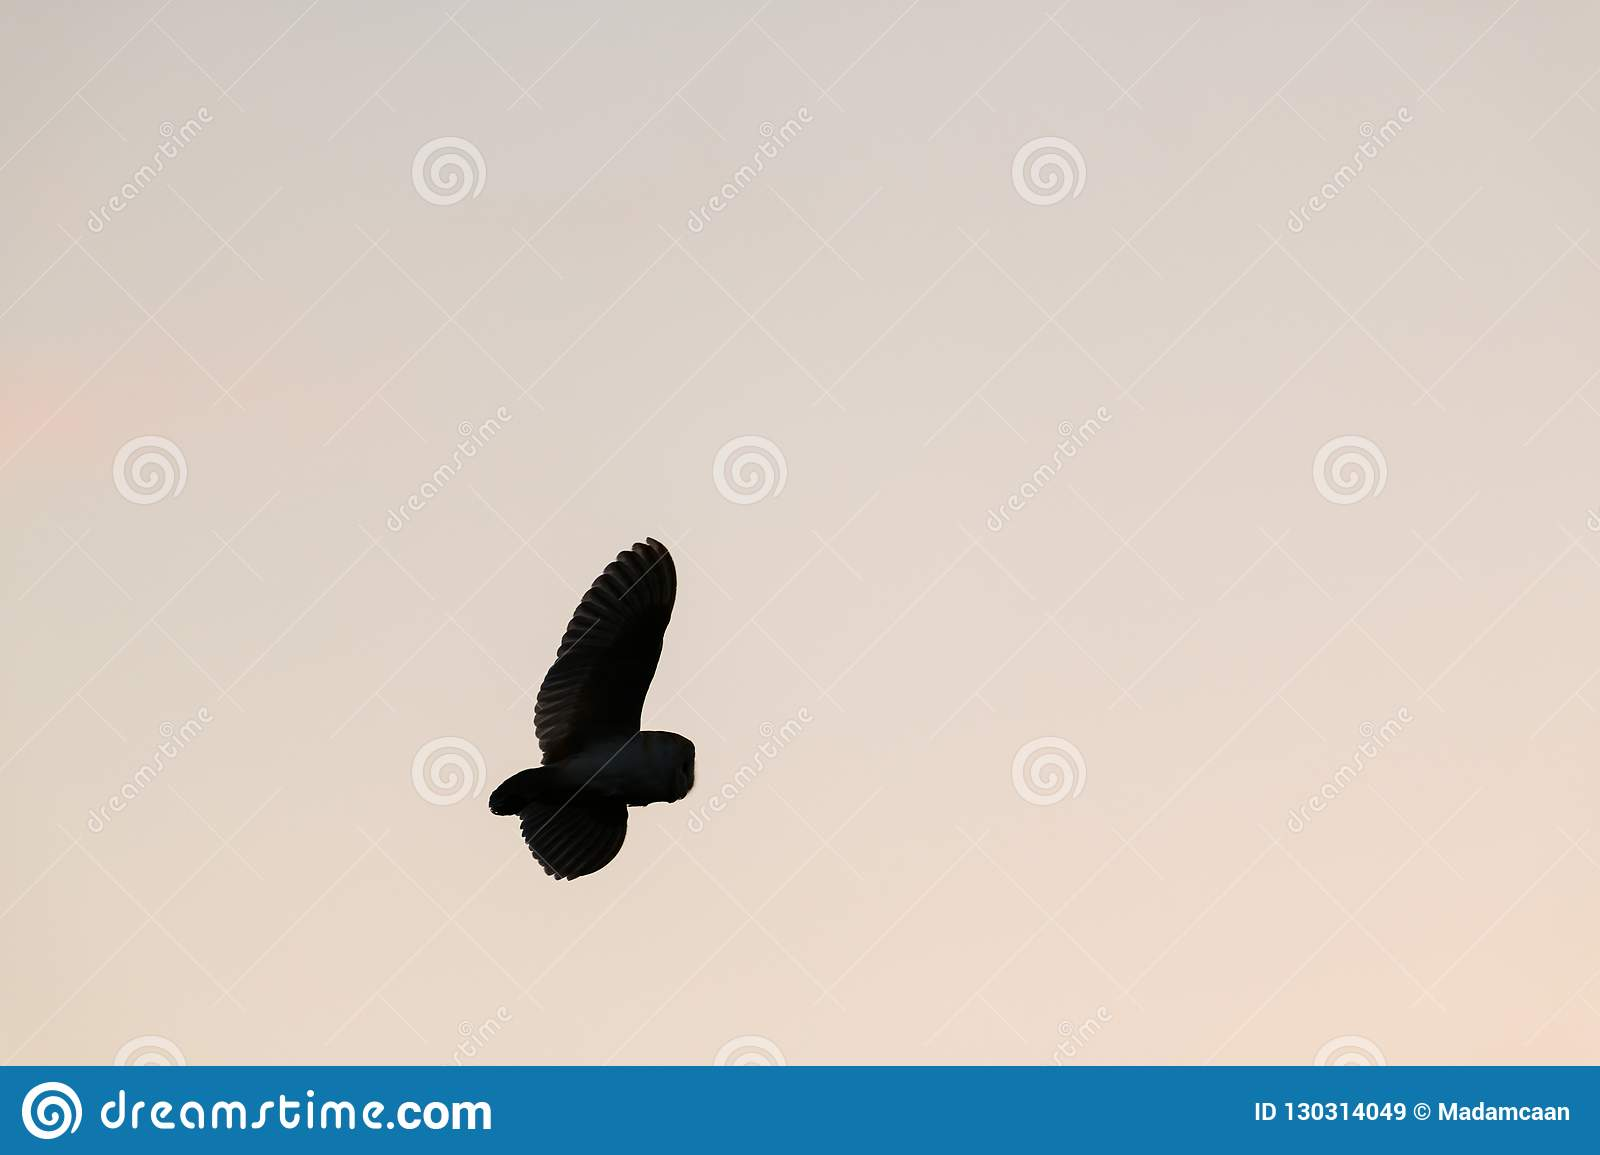 Silhouette Of Wild Barn Owl Hunting At Sunset In Natural